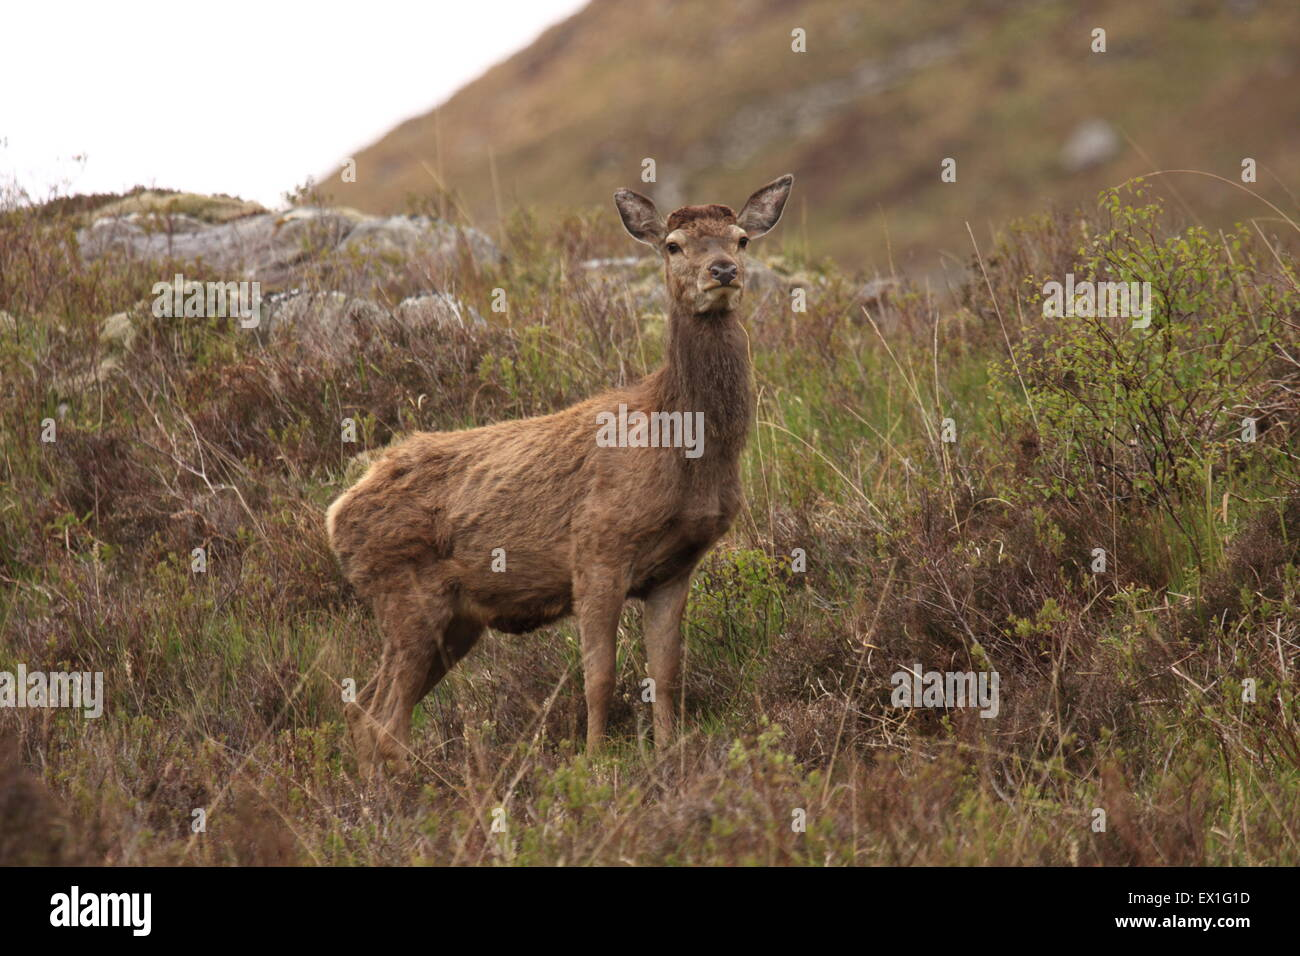 Red Deer Hind in the Scottish Highlands in spring. - Stock Image